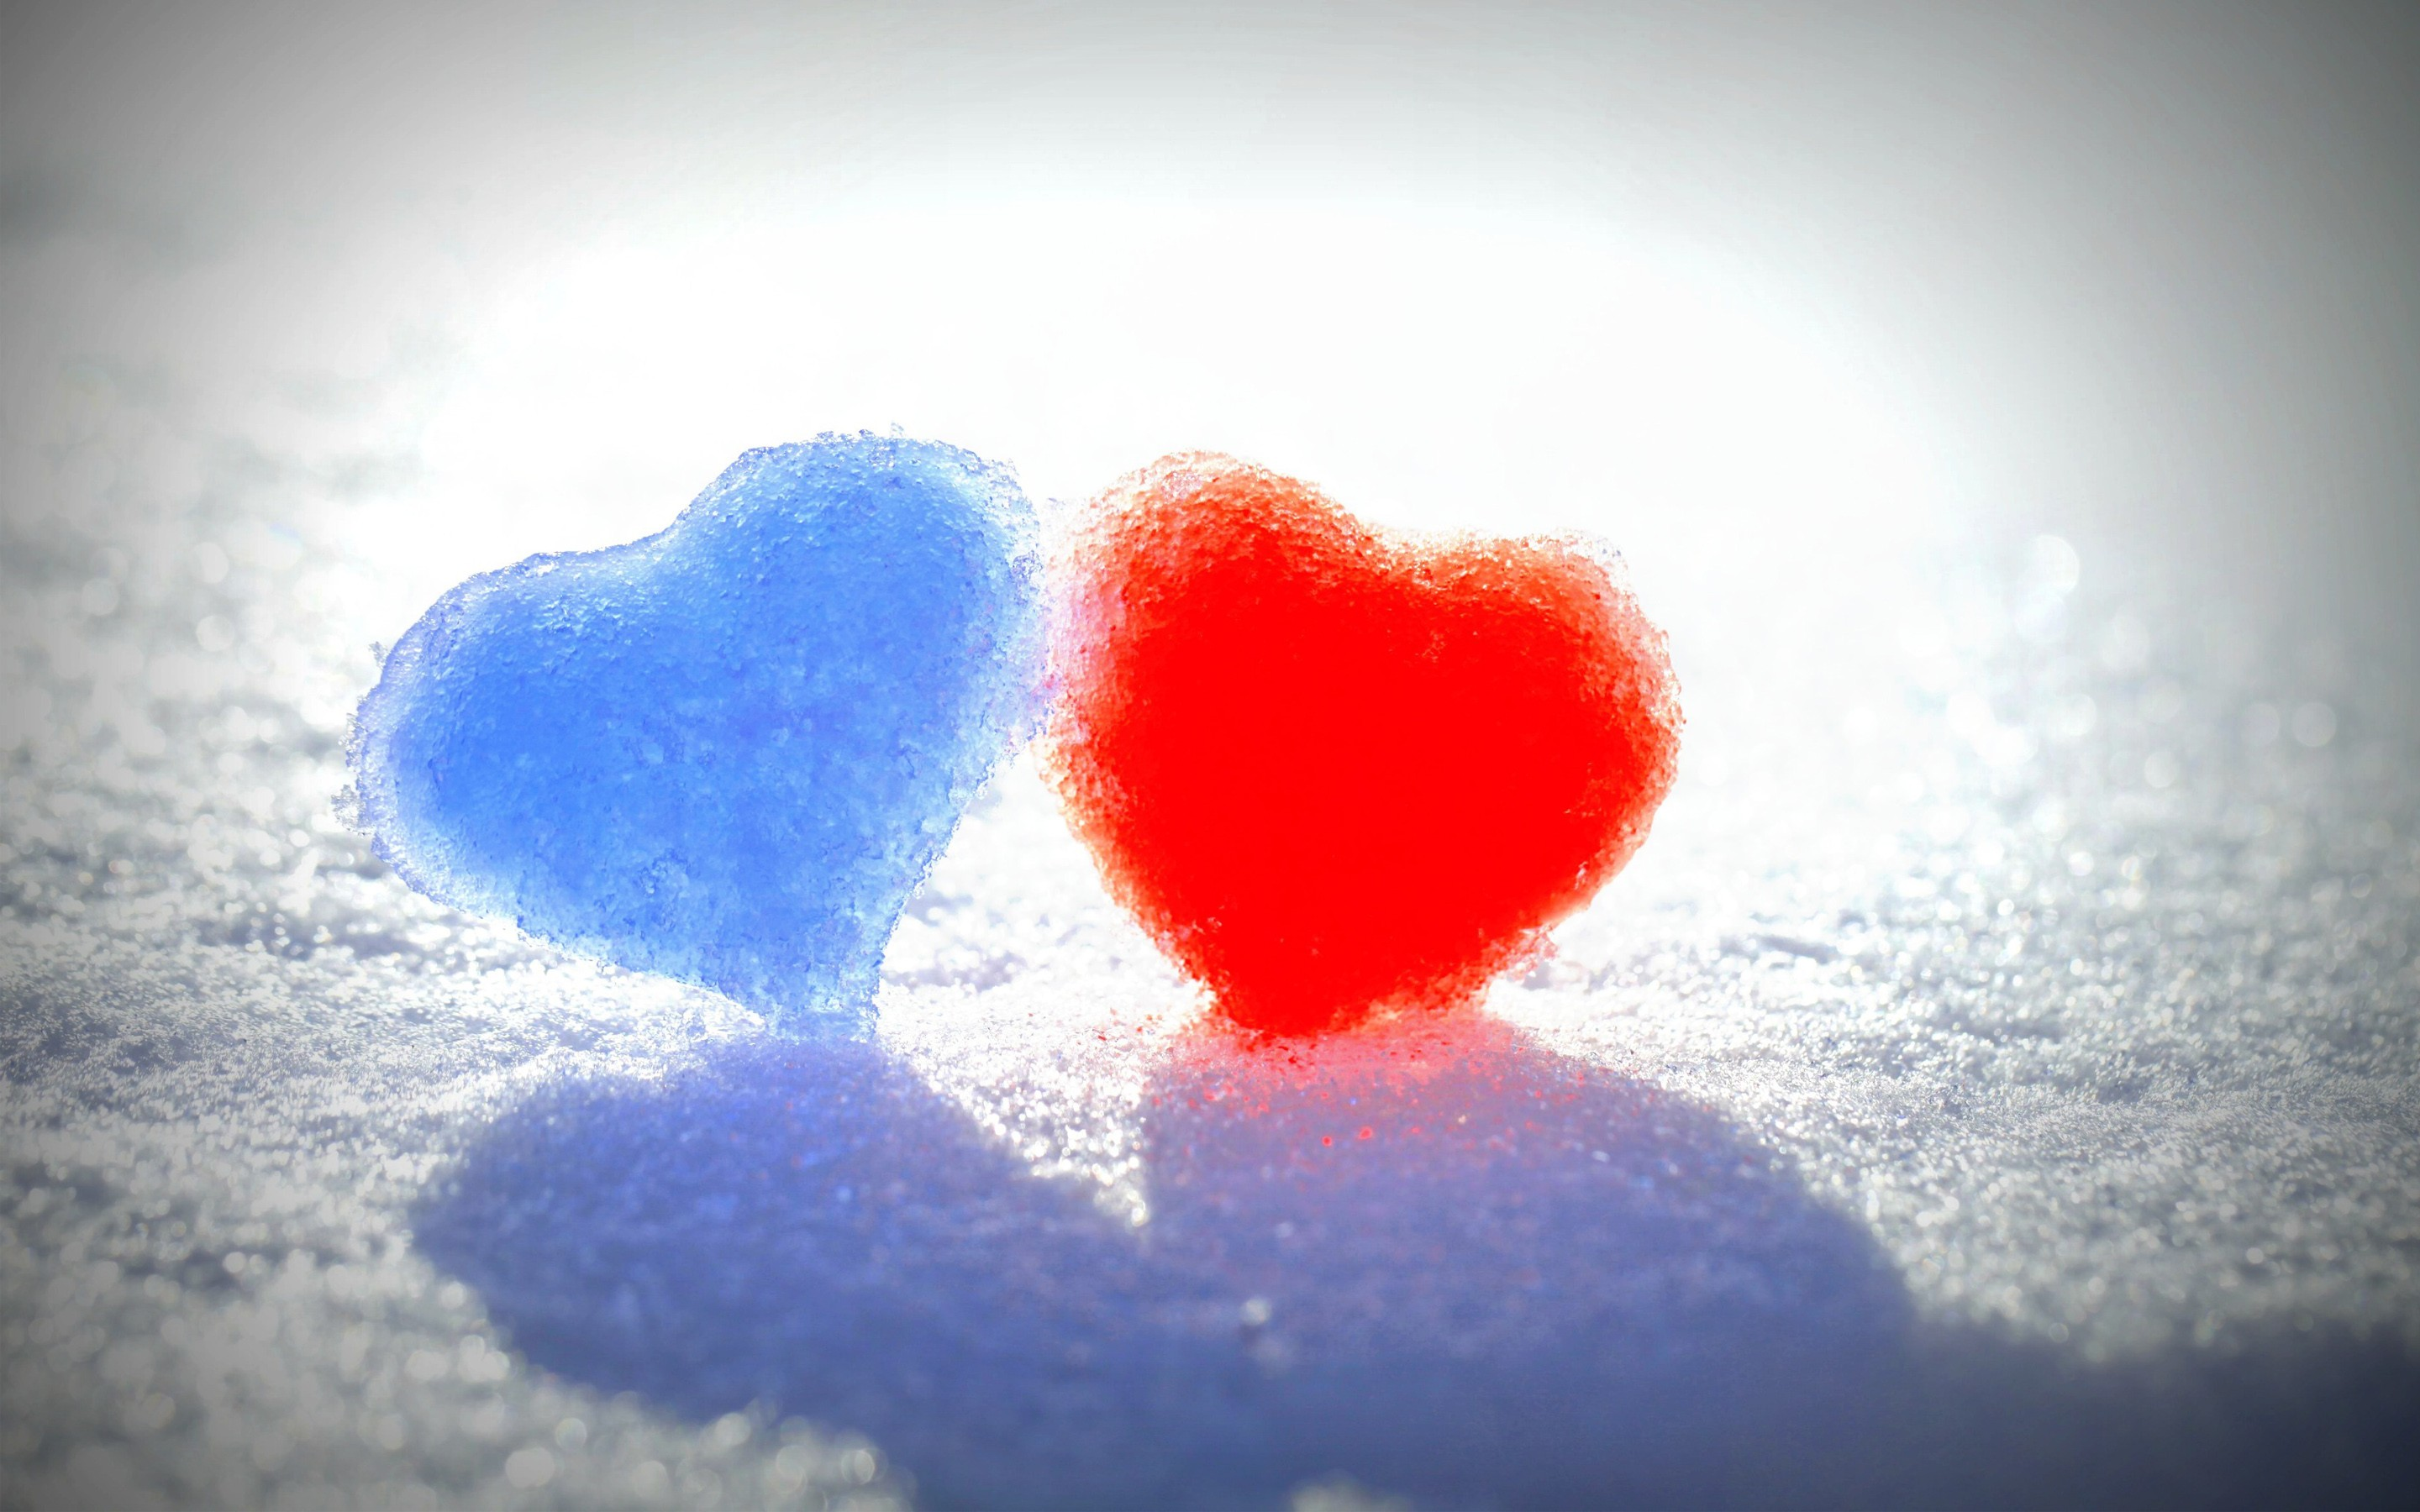 Iphone X Live Wallpaper Android Blue Red Snow Hearts Wallpapers Hd Wallpapers Id 14317